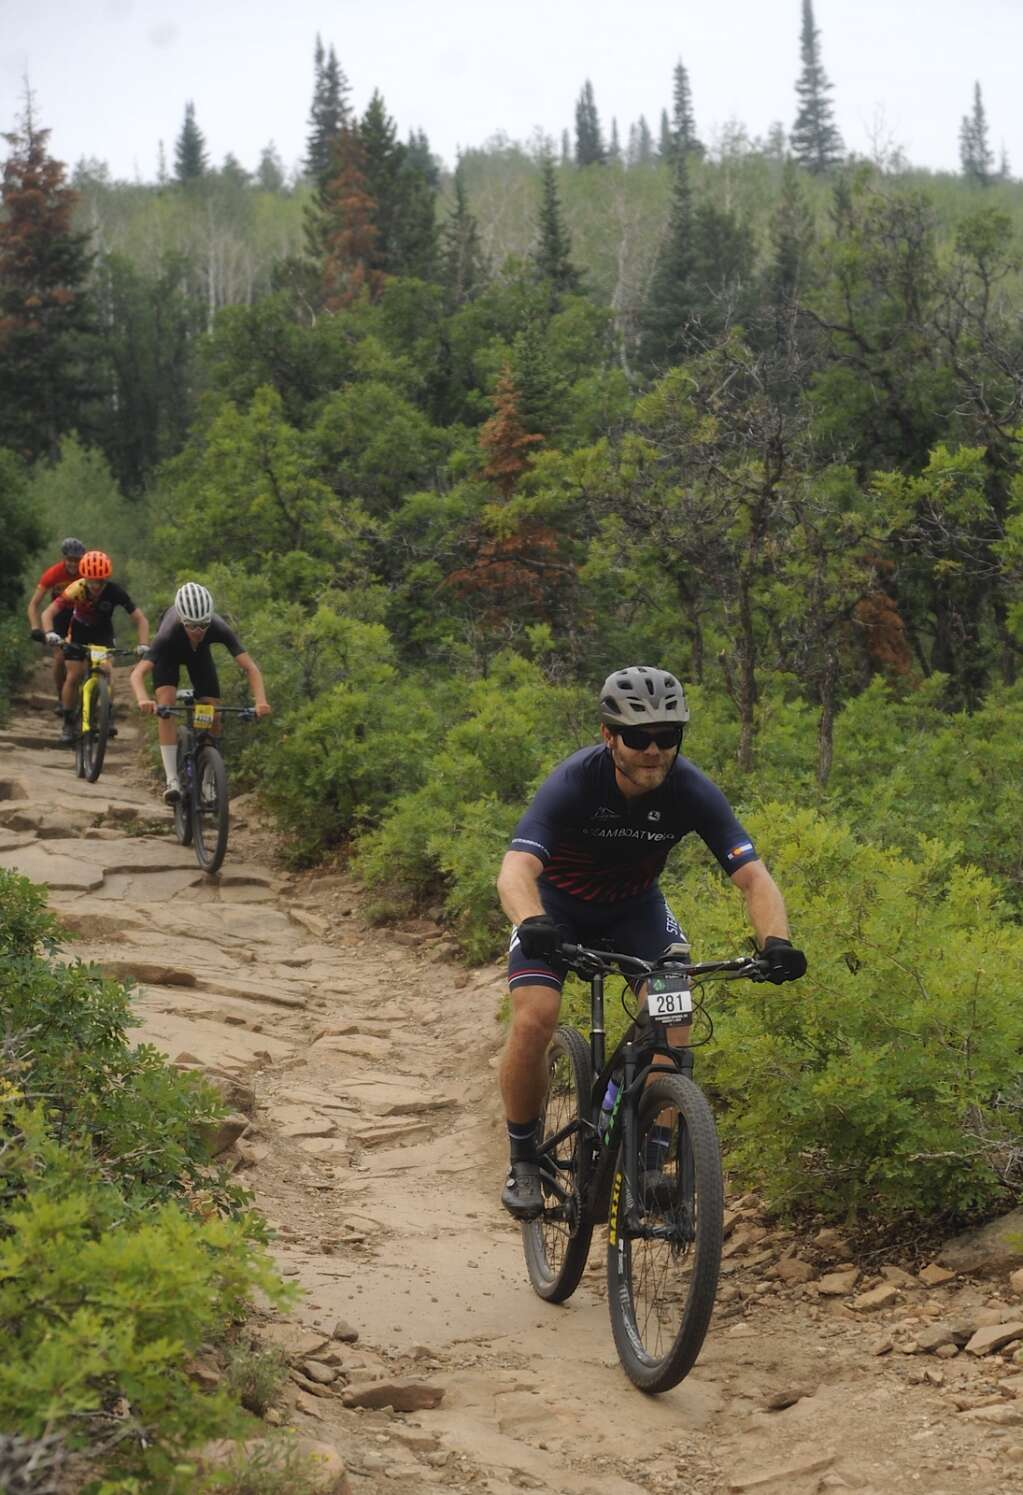 Cyclists move surprisingly fast on the Little Moab descent on the Emerald Mountain Epic course on Saturday morning. Apparently, faster is better. (Photo by Shelby Reardon)